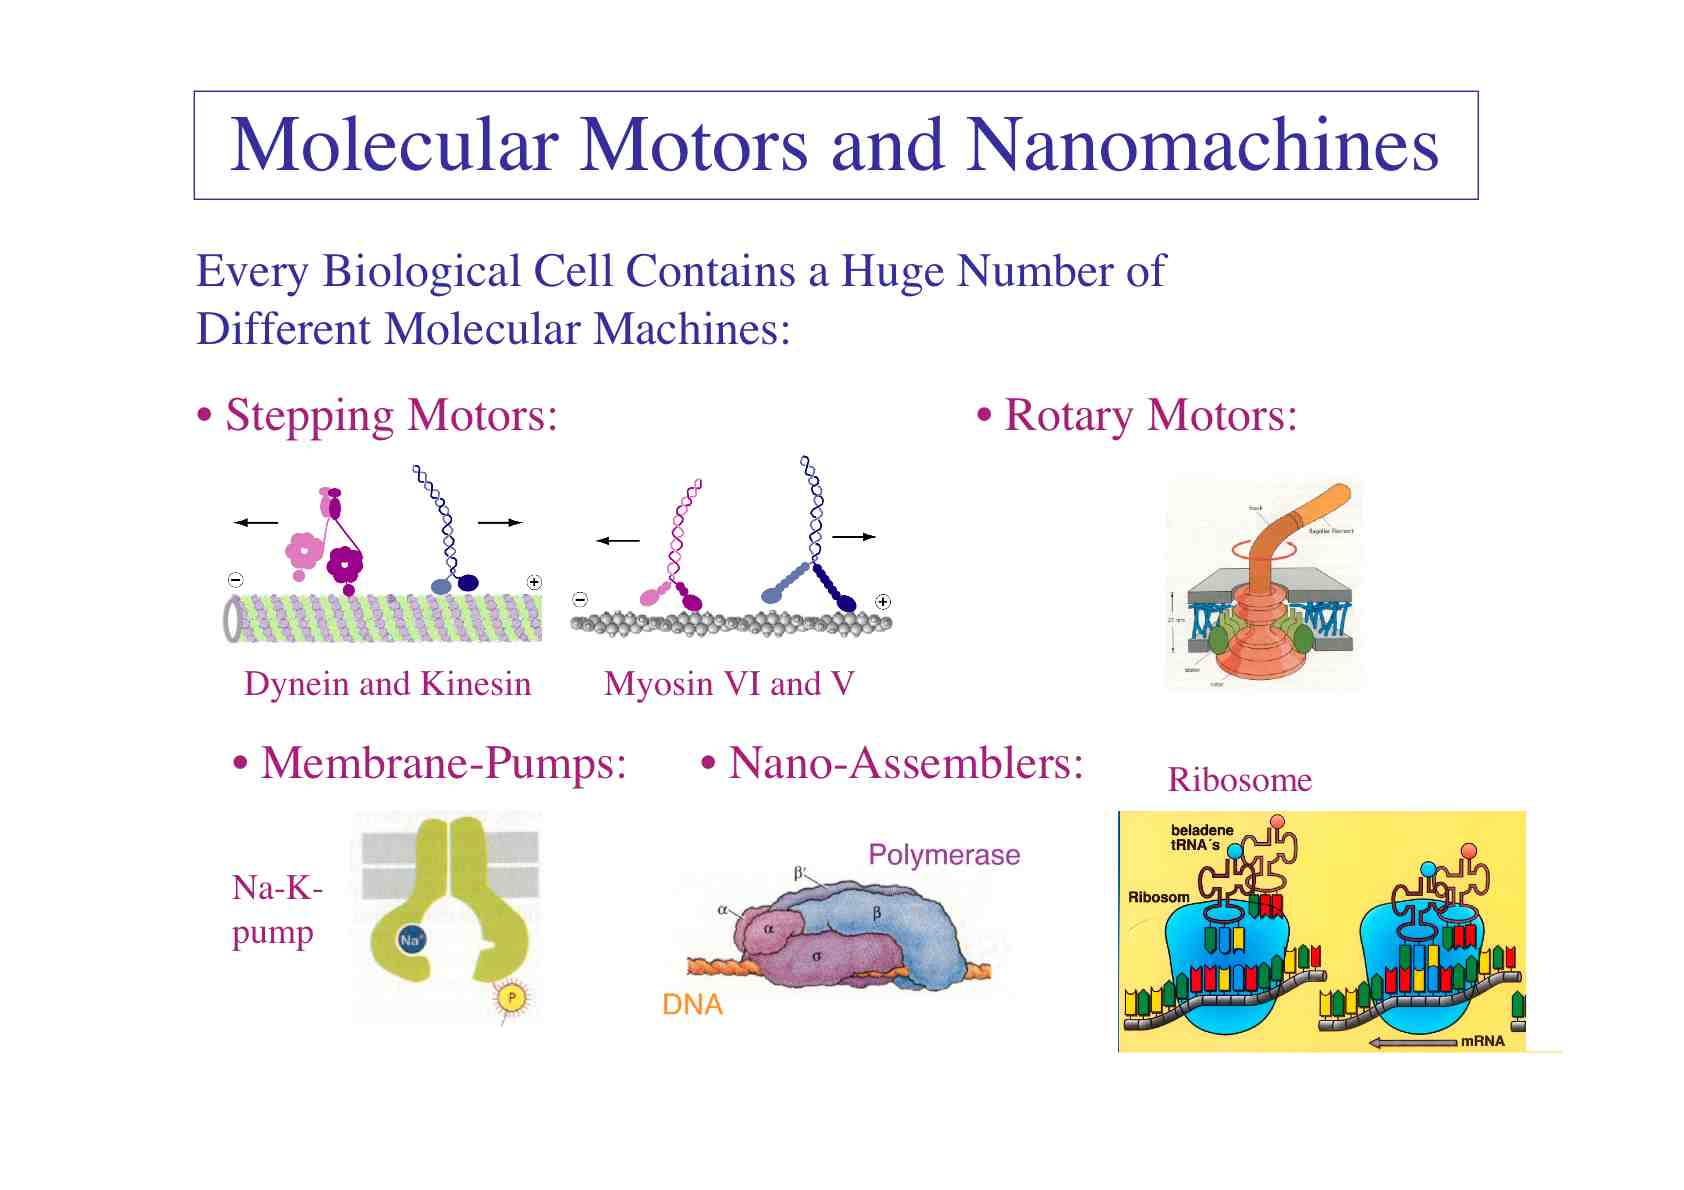 Different Types Of Molecular Motors And Nanomachines